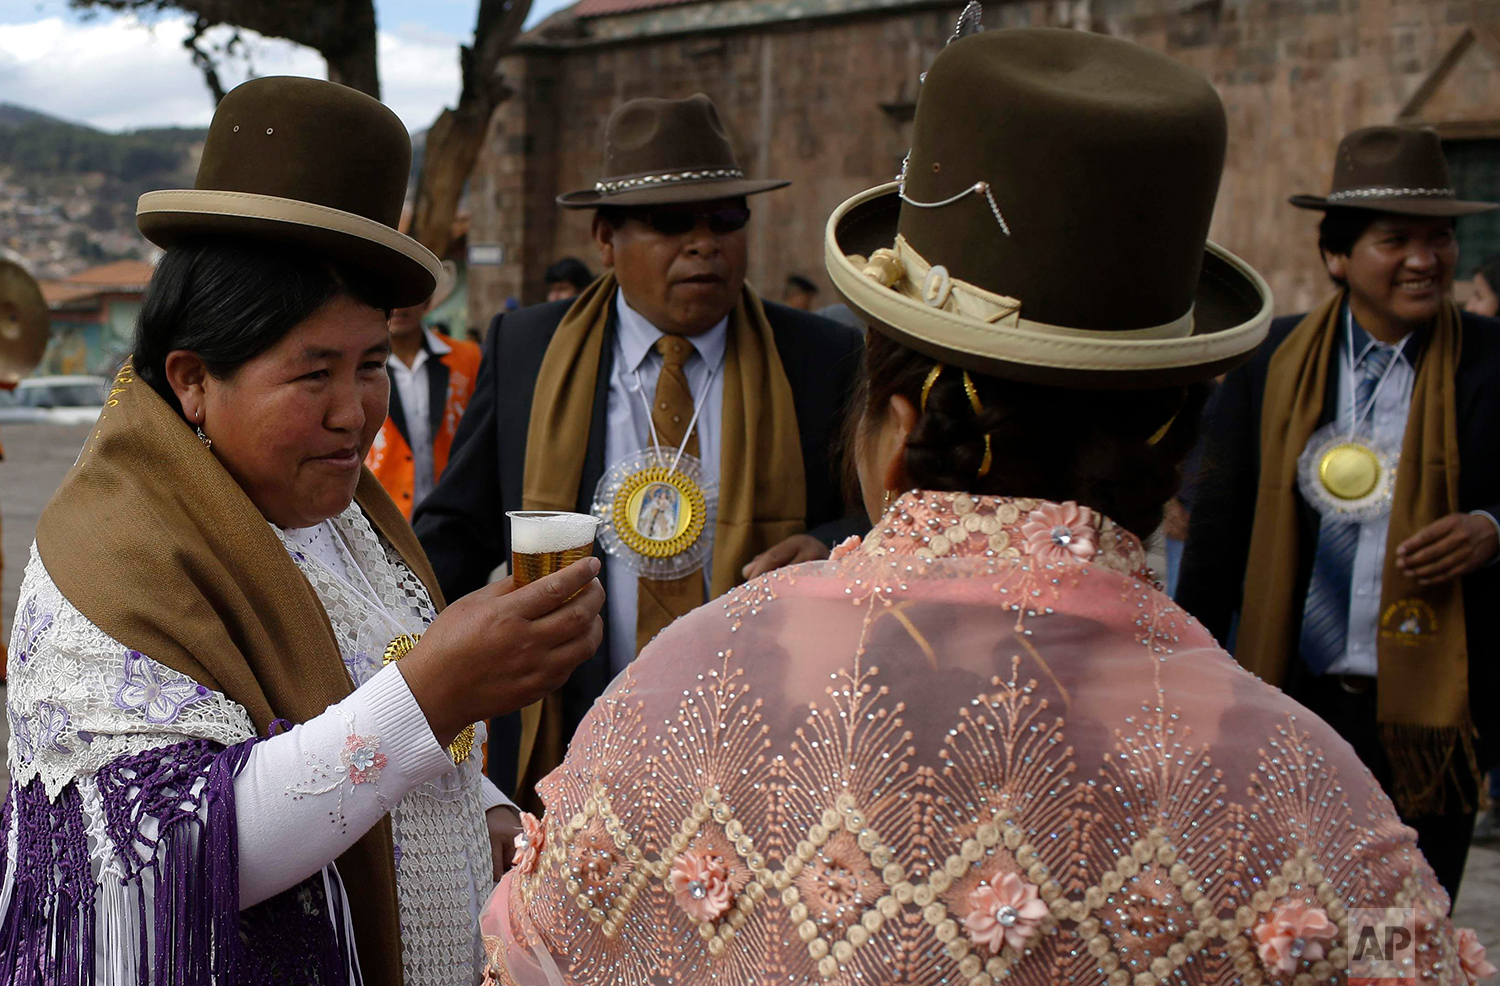 """""""Cholas"""" share a toast during a pause in the religious procession honoring Our Lady of Copacabana in Cuzco, Peru, Aug. 5, 2018. It is customary for organizers to offer free food and drink for celebrants. (AP Photo/Martin Mejia)"""